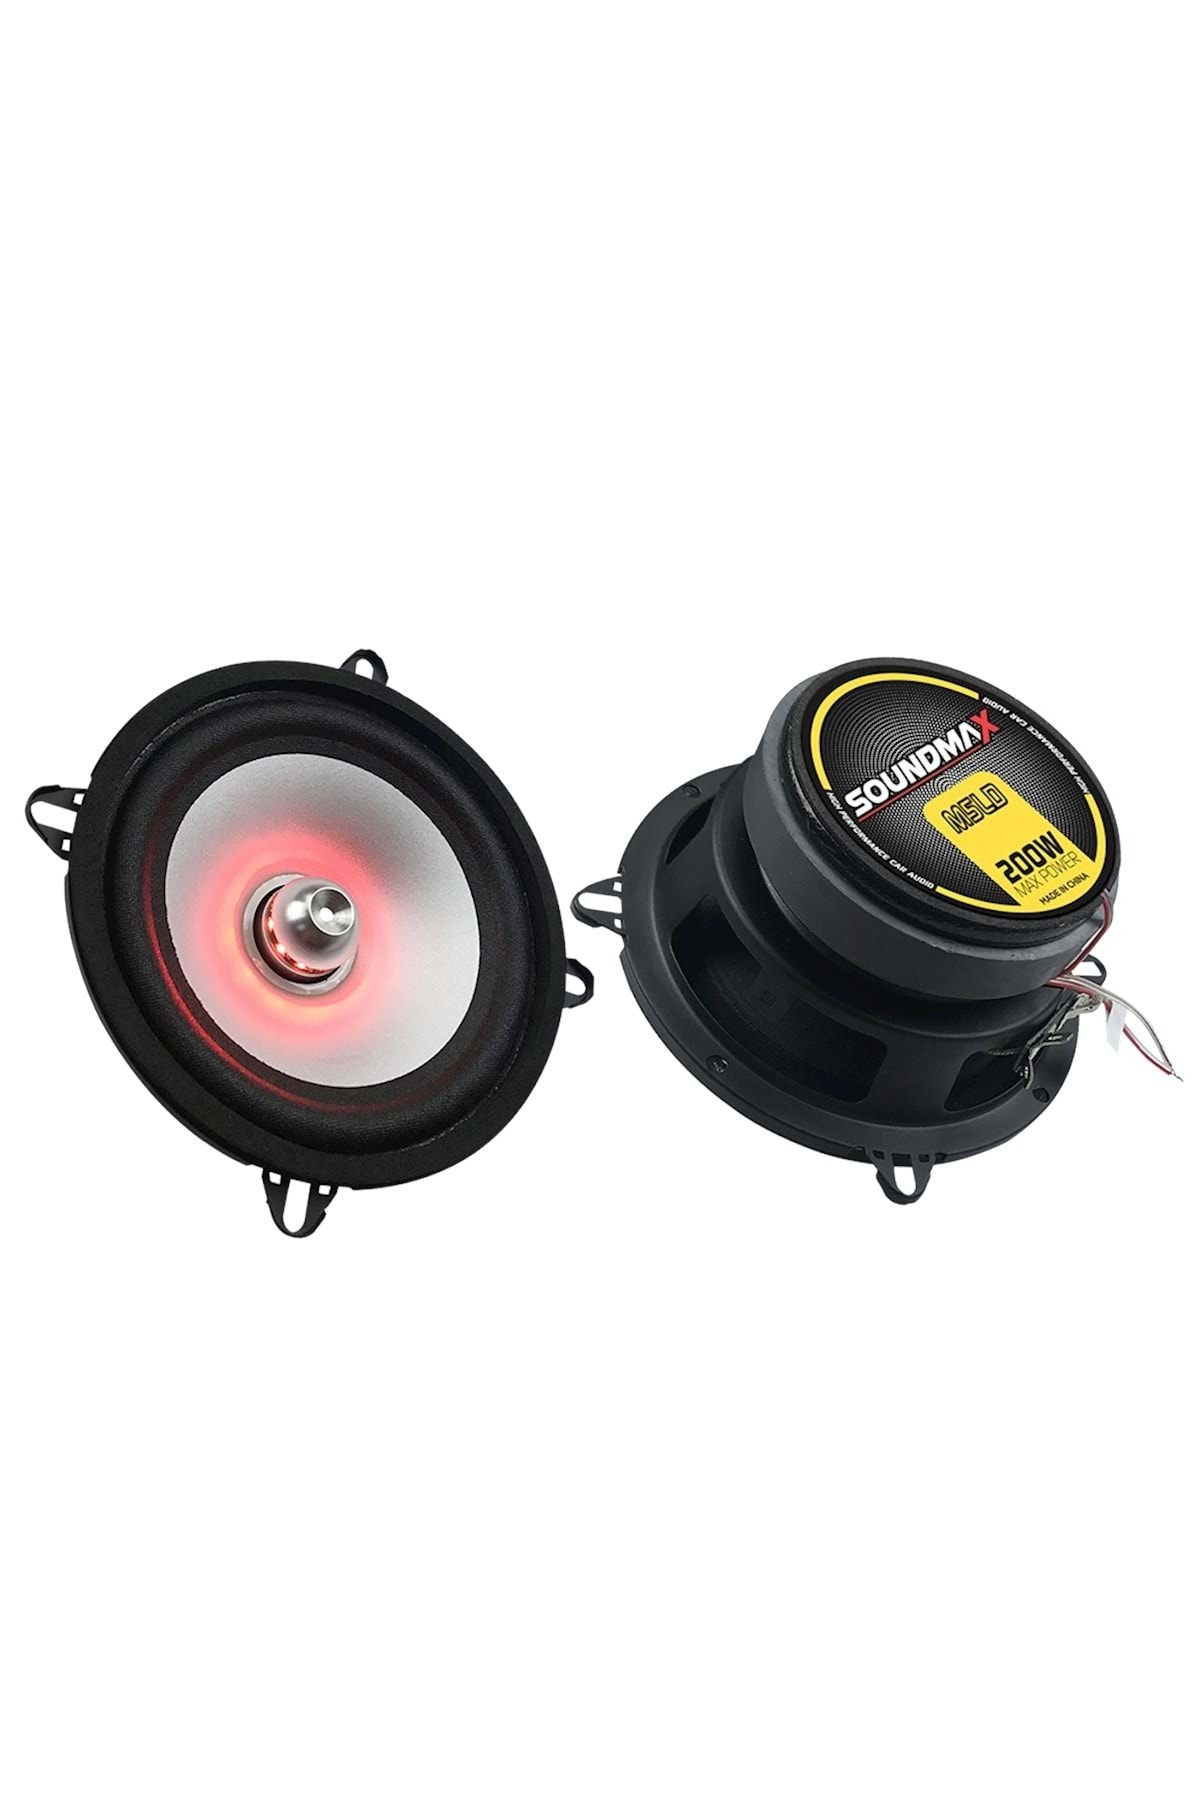 Soundmax Sx-m5ld 13cm Led Midrange 200 Watt Max Power + 75 Watt Rms Power 1